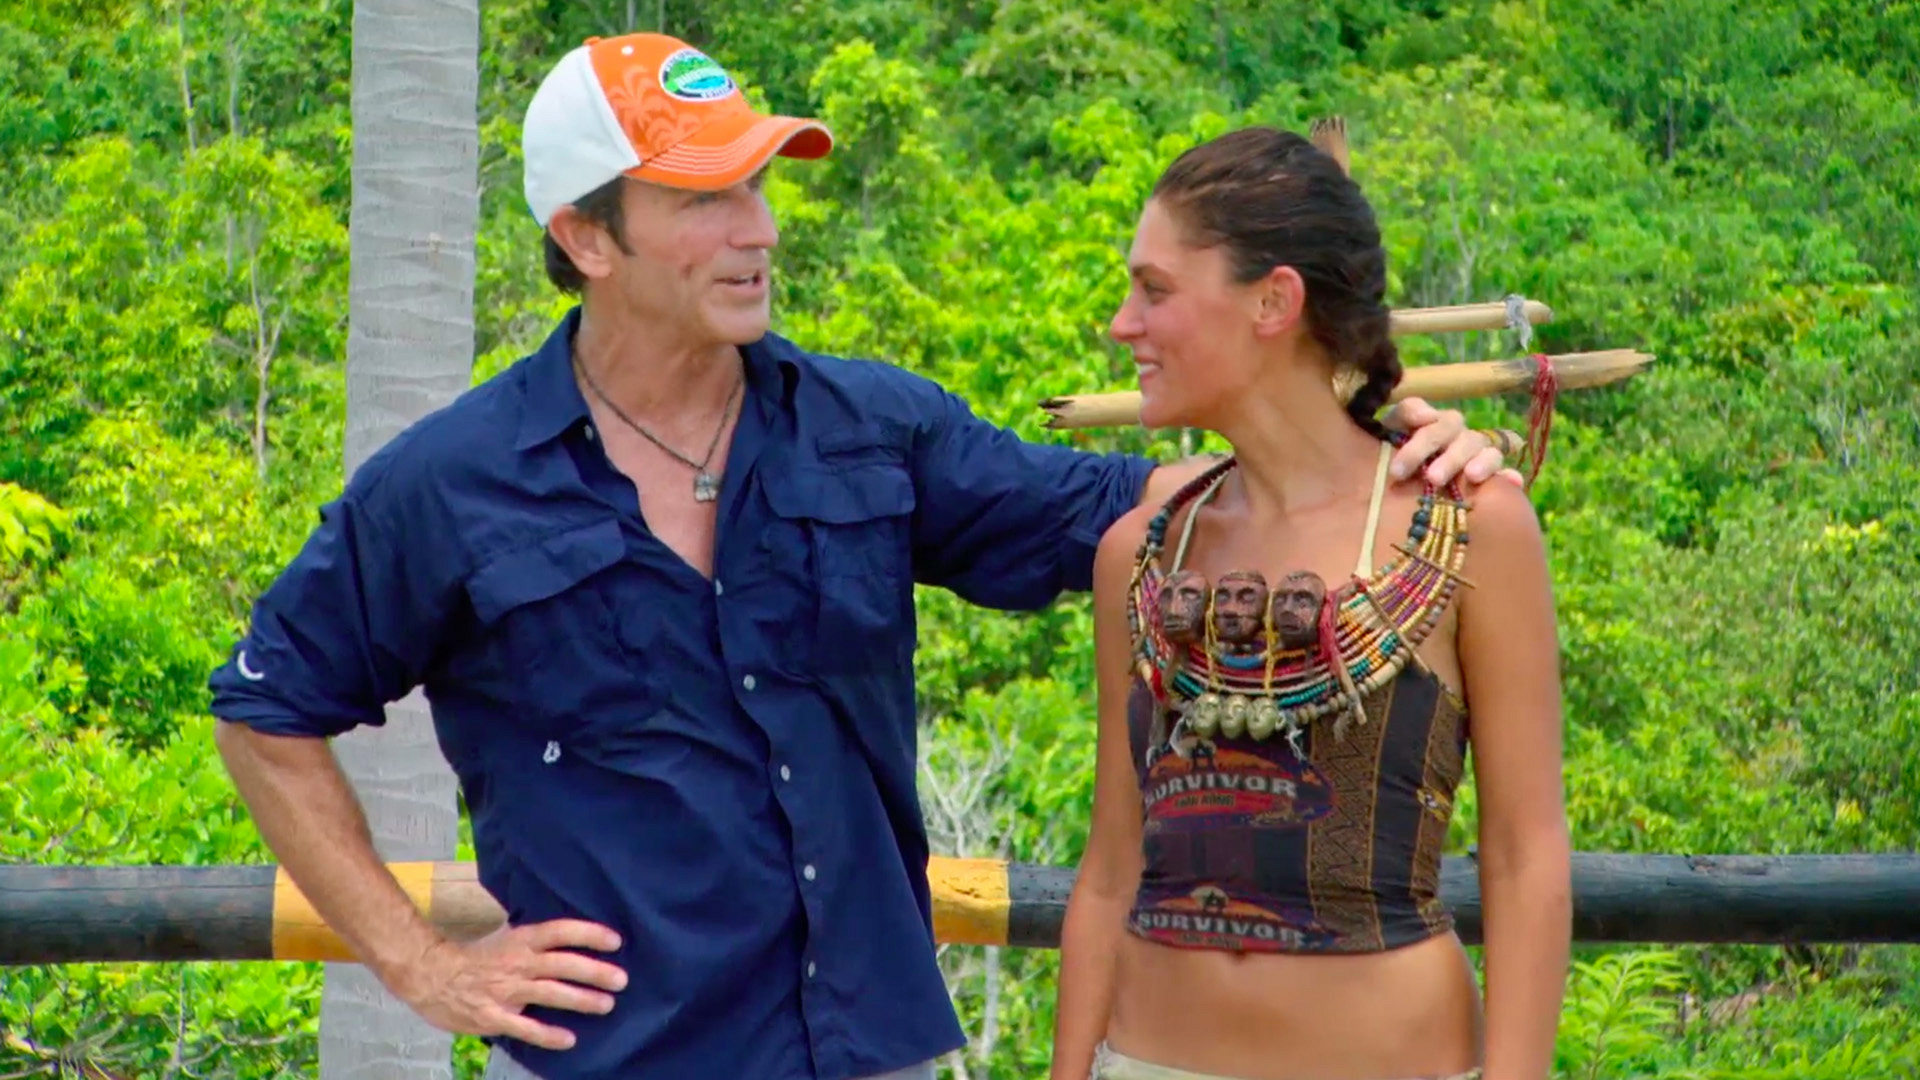 3. Michele wins Immunity and a spot in the Final 3.